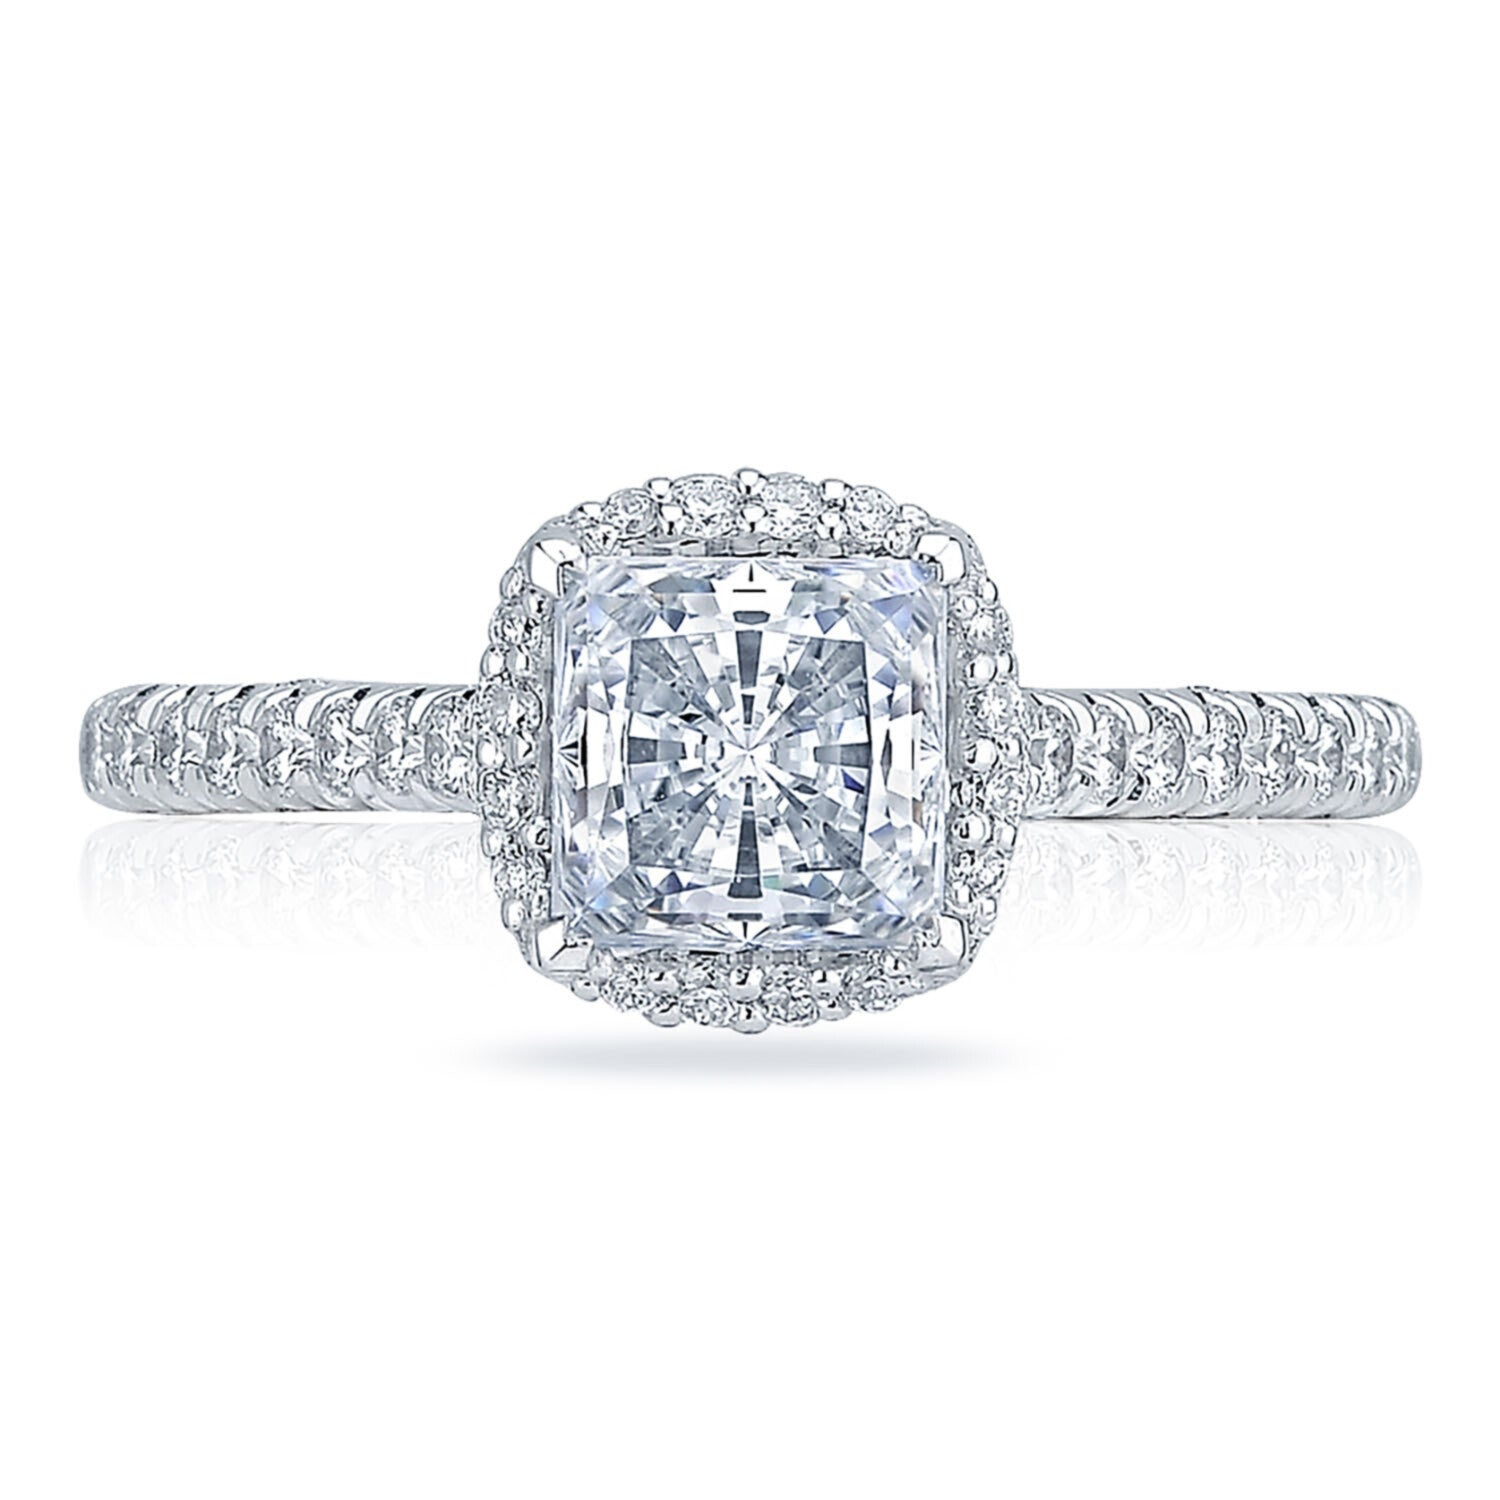 White Gold Princess Diamond Halo Engagement Ring